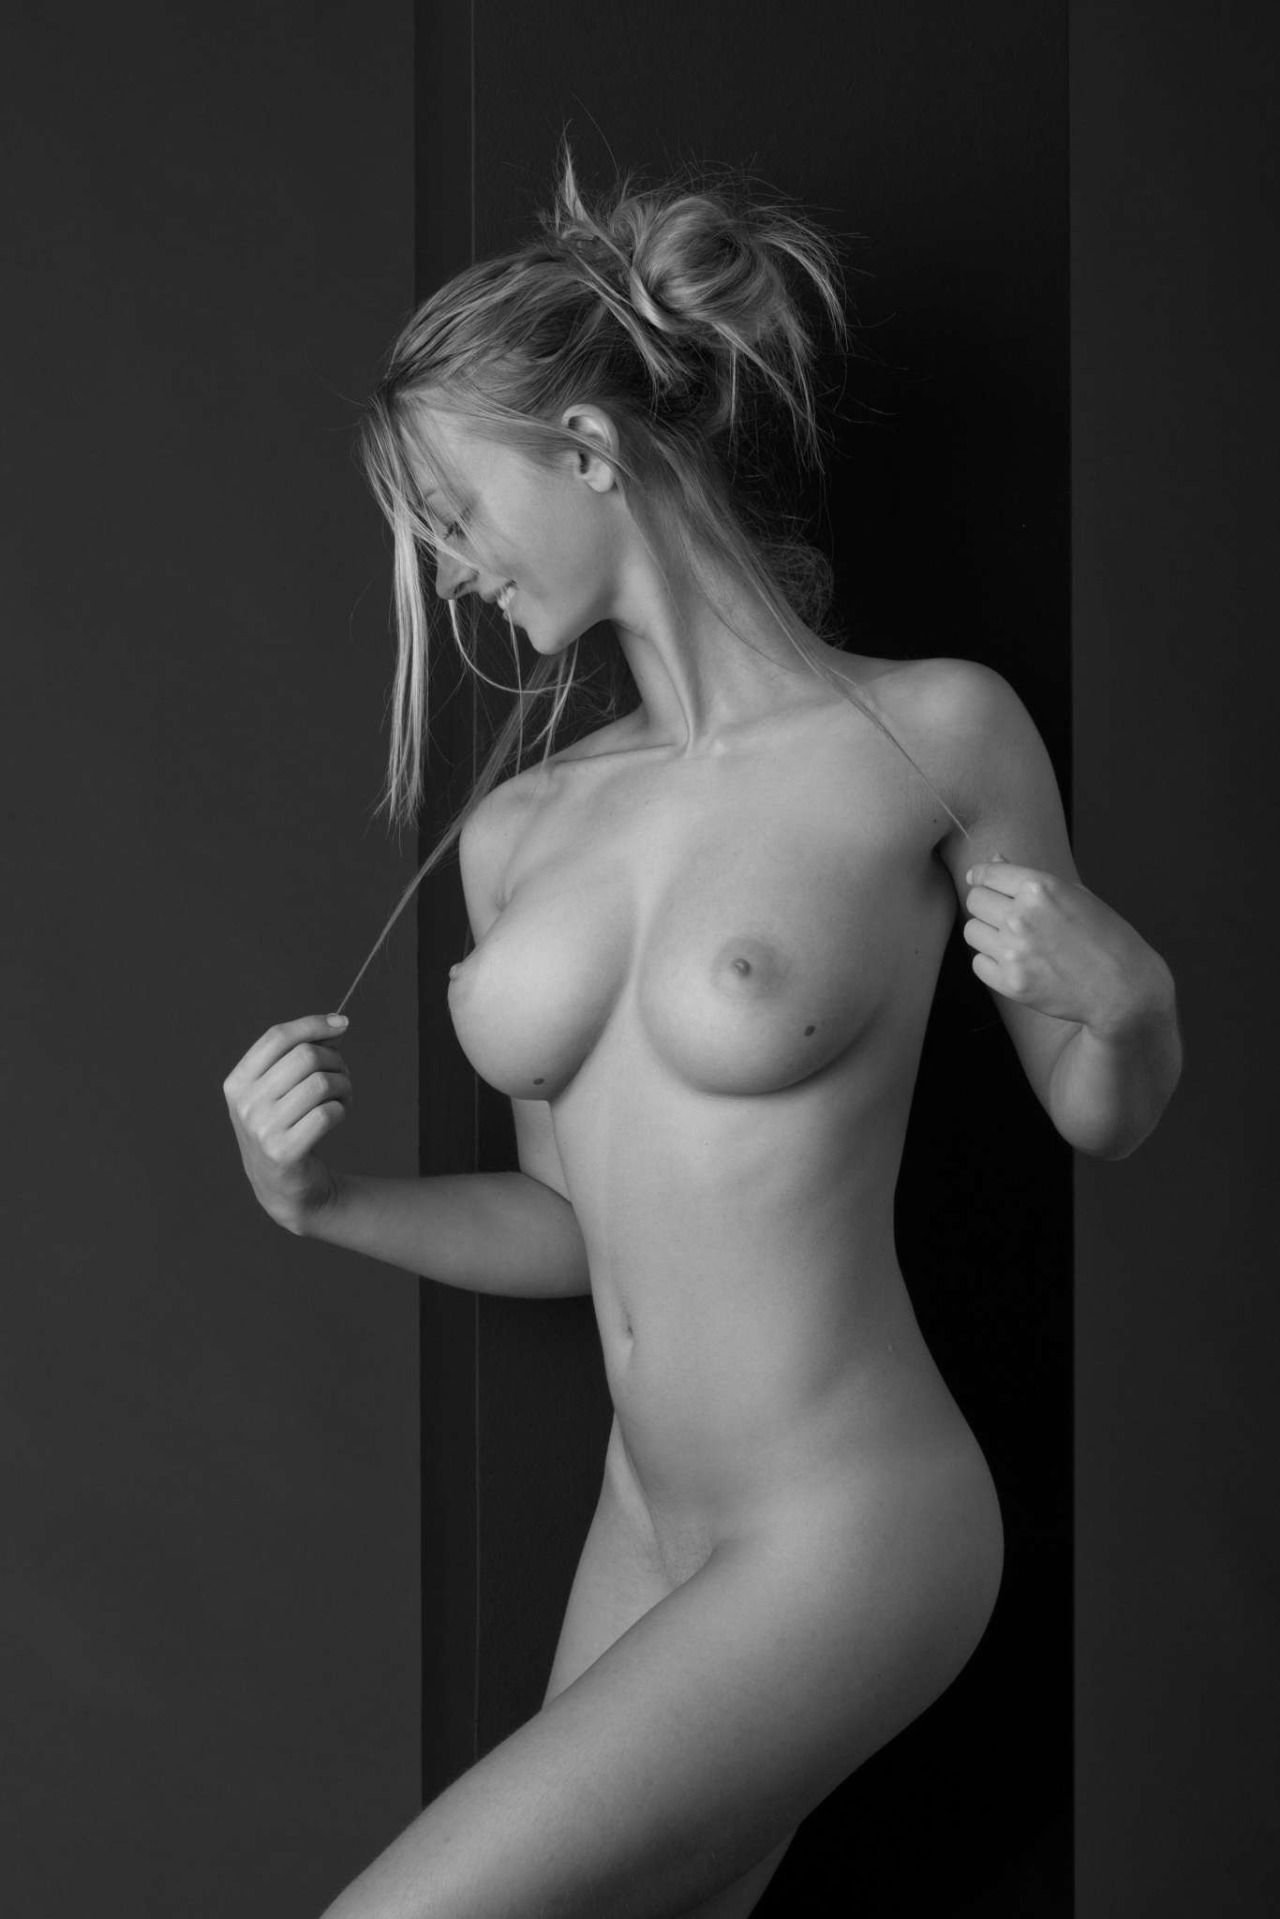 Hot erotic nude babes #1